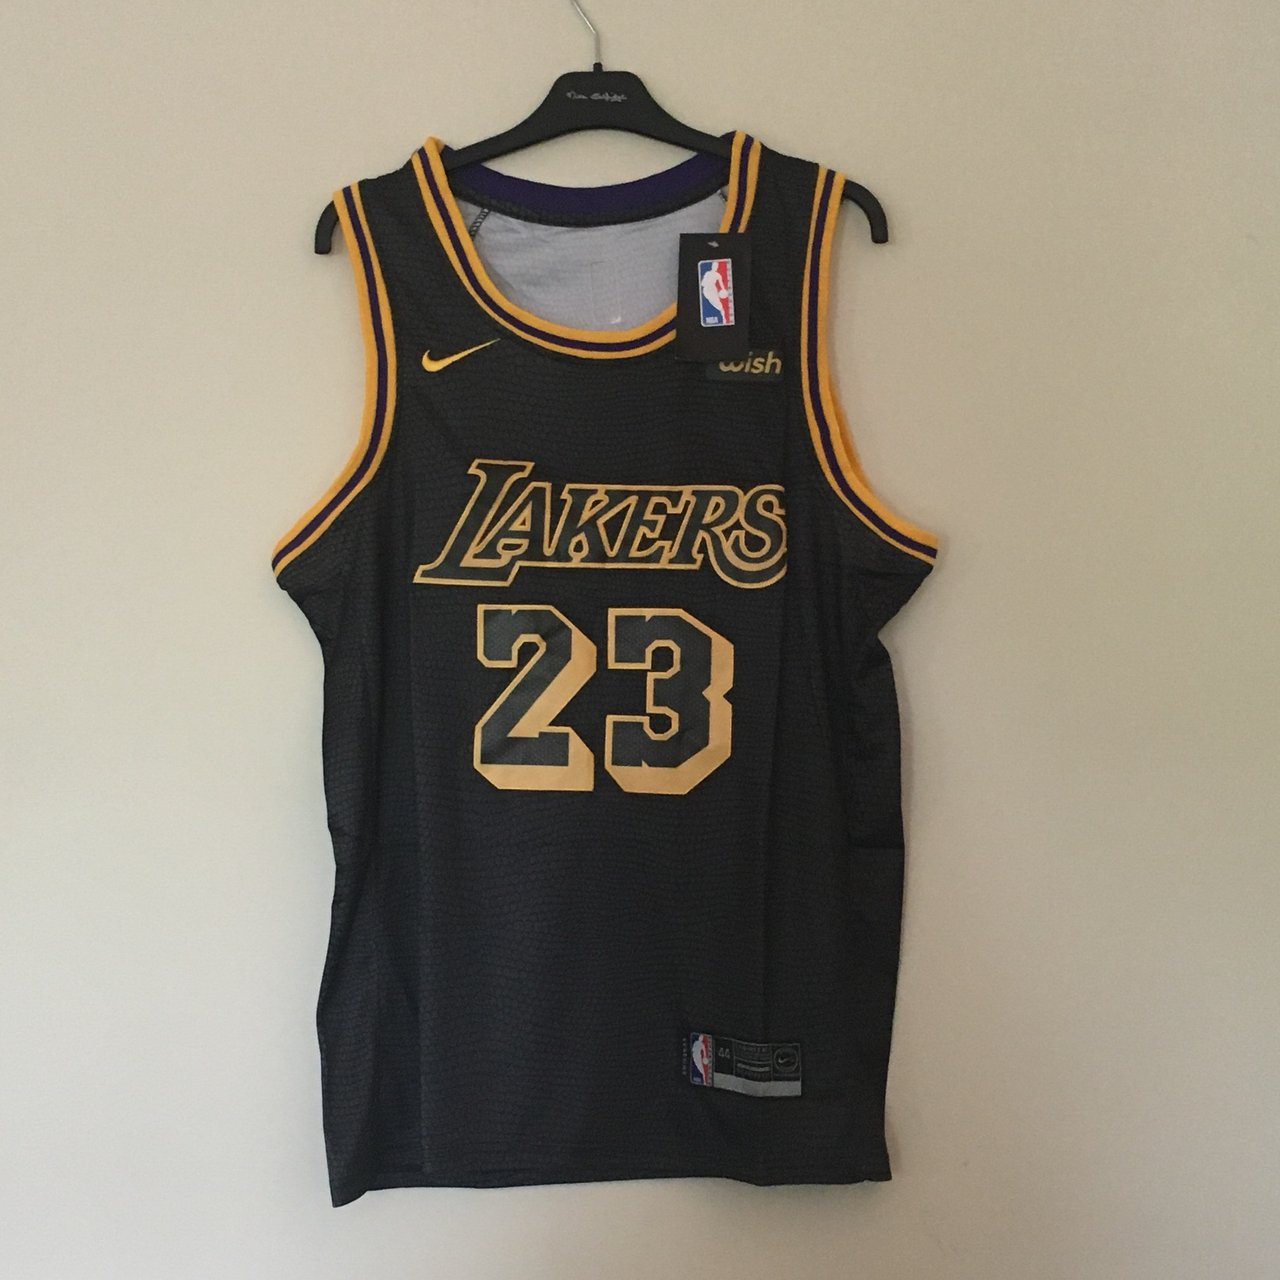 b4c4e769e @basketballjerseys_ireland. 10 months ago. Ireland. - LA Lakers alternative  jersey - #23 Lebron James